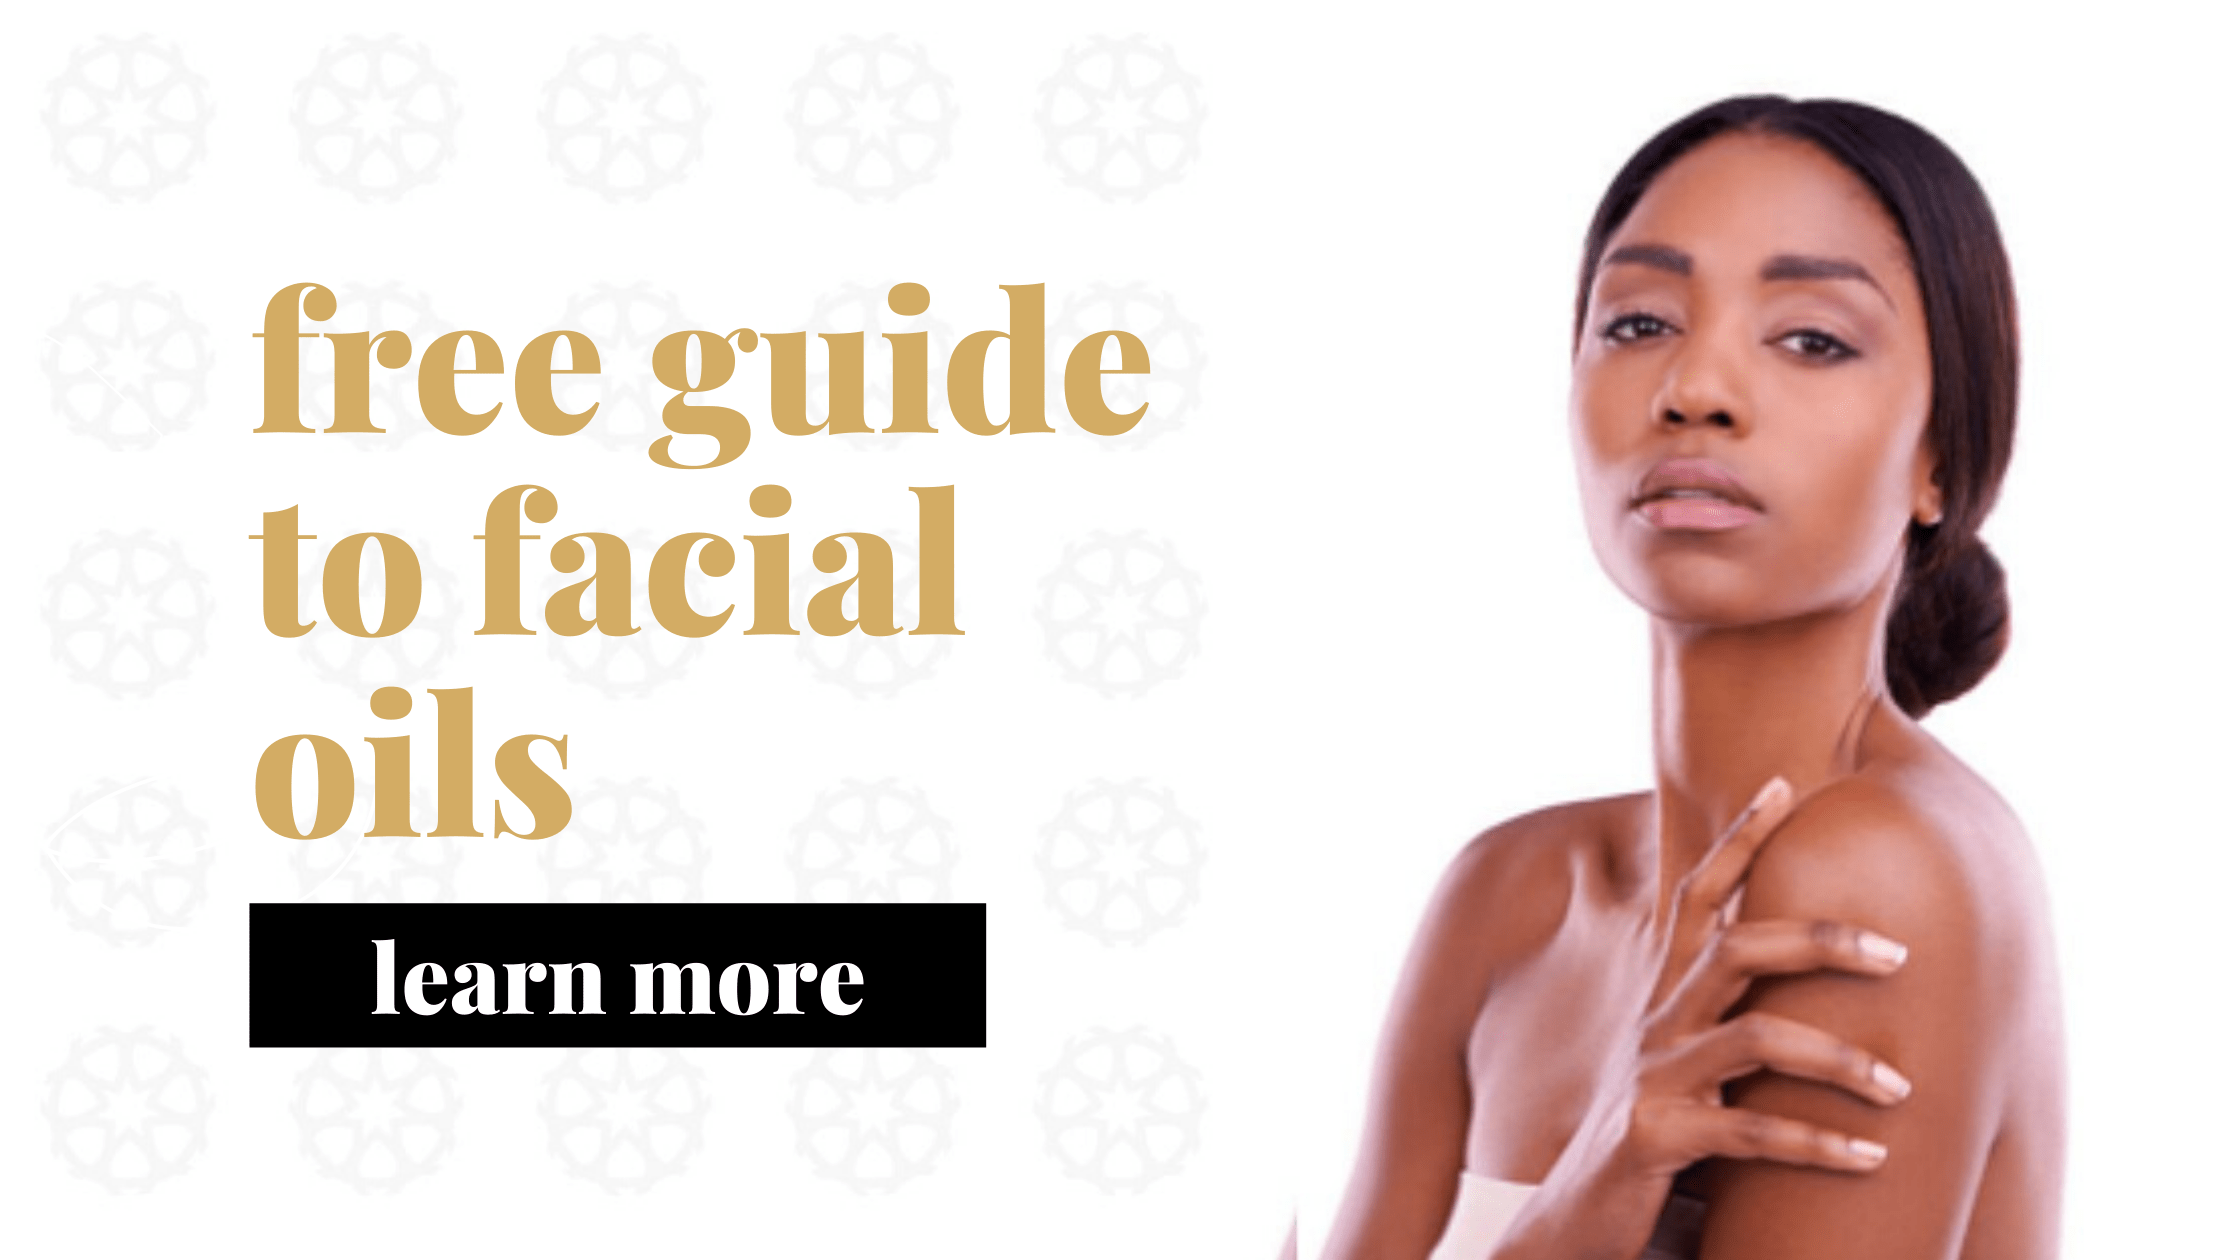 free guide to facial oils by amaiaa (1)